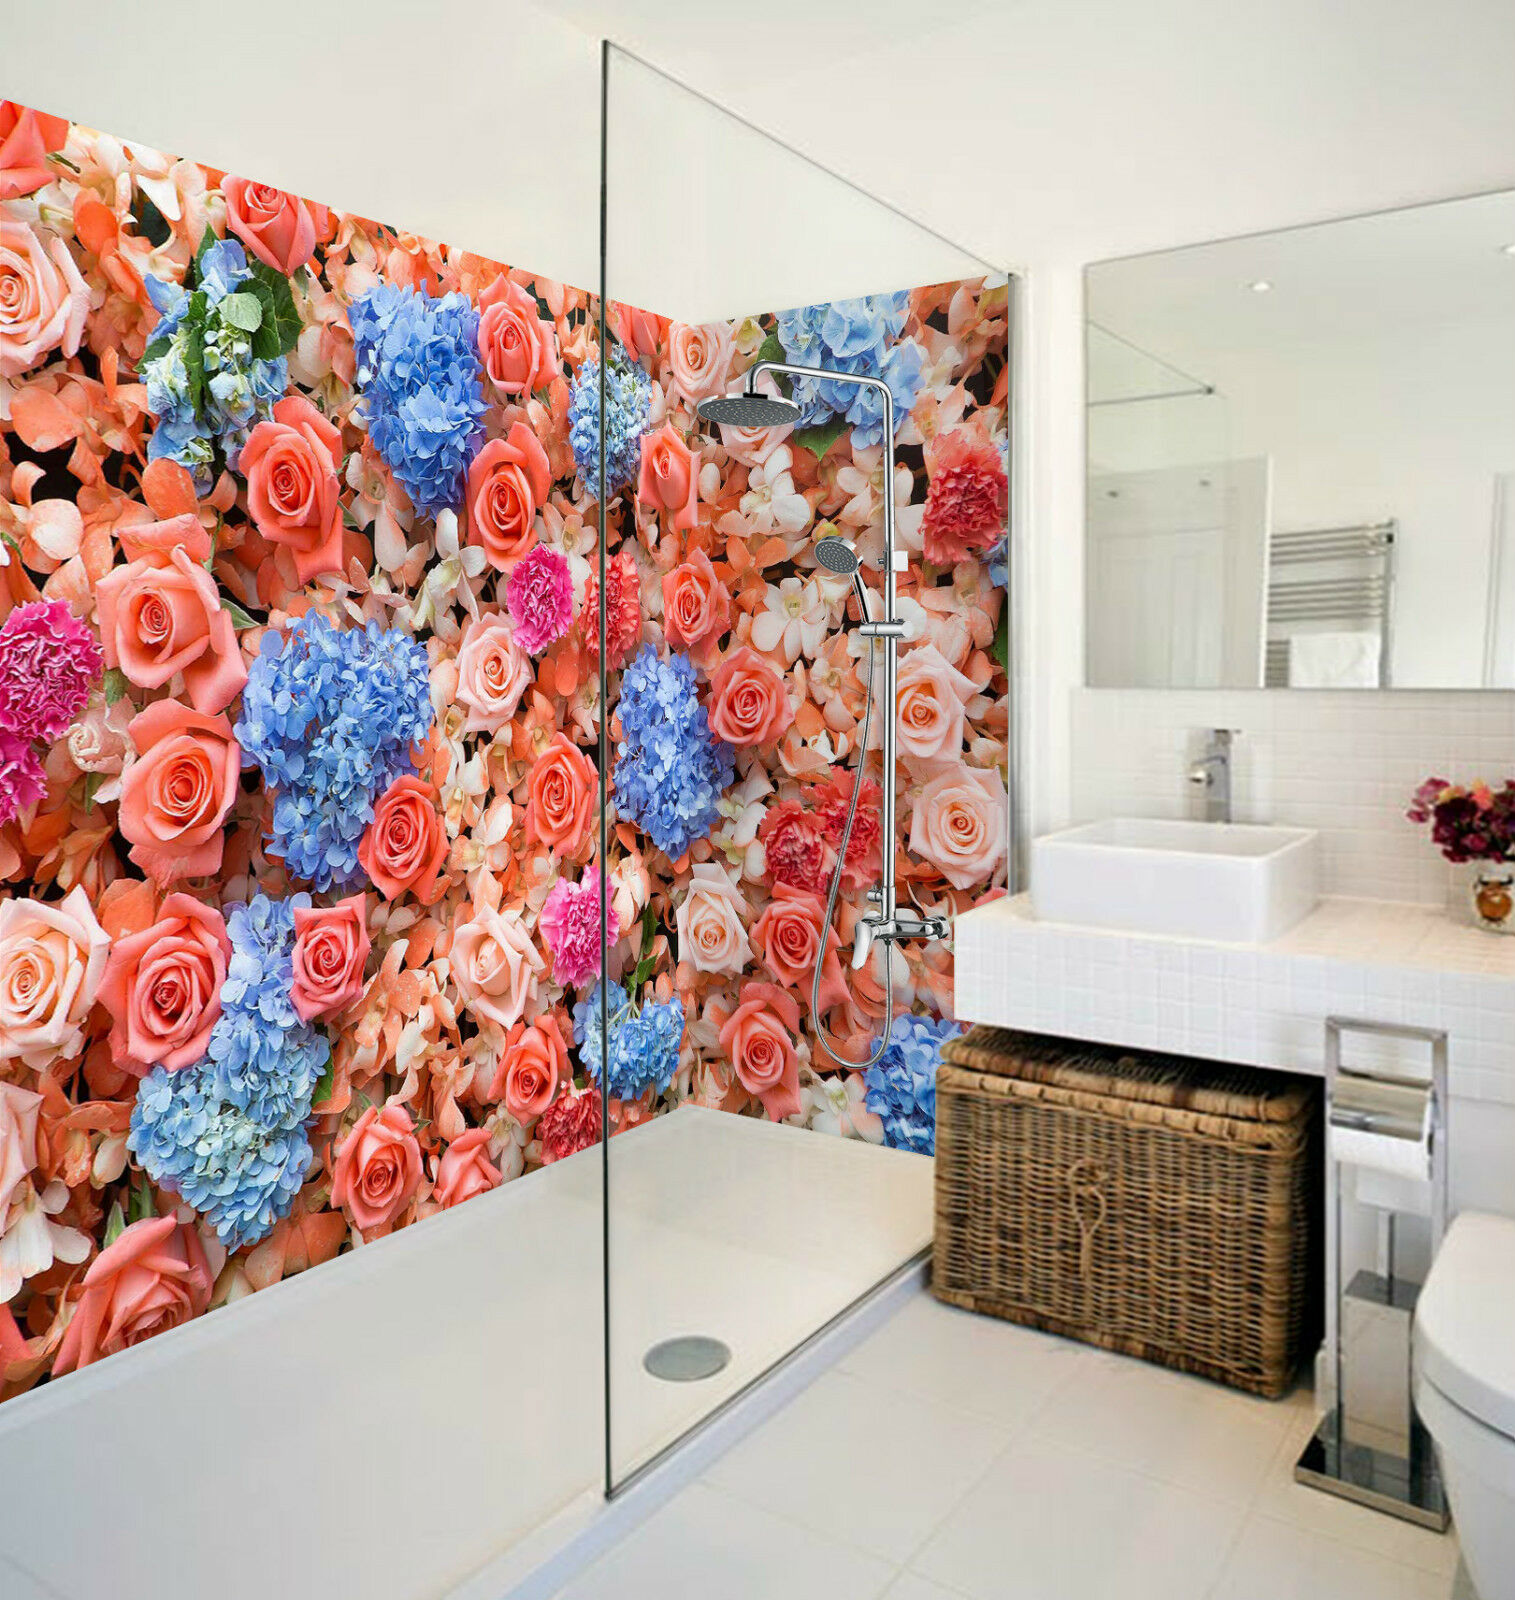 3D Farbeful Flowers 134 WallPaper Bathroom Print Decal Wall Deco AJ WALLPAPER CA